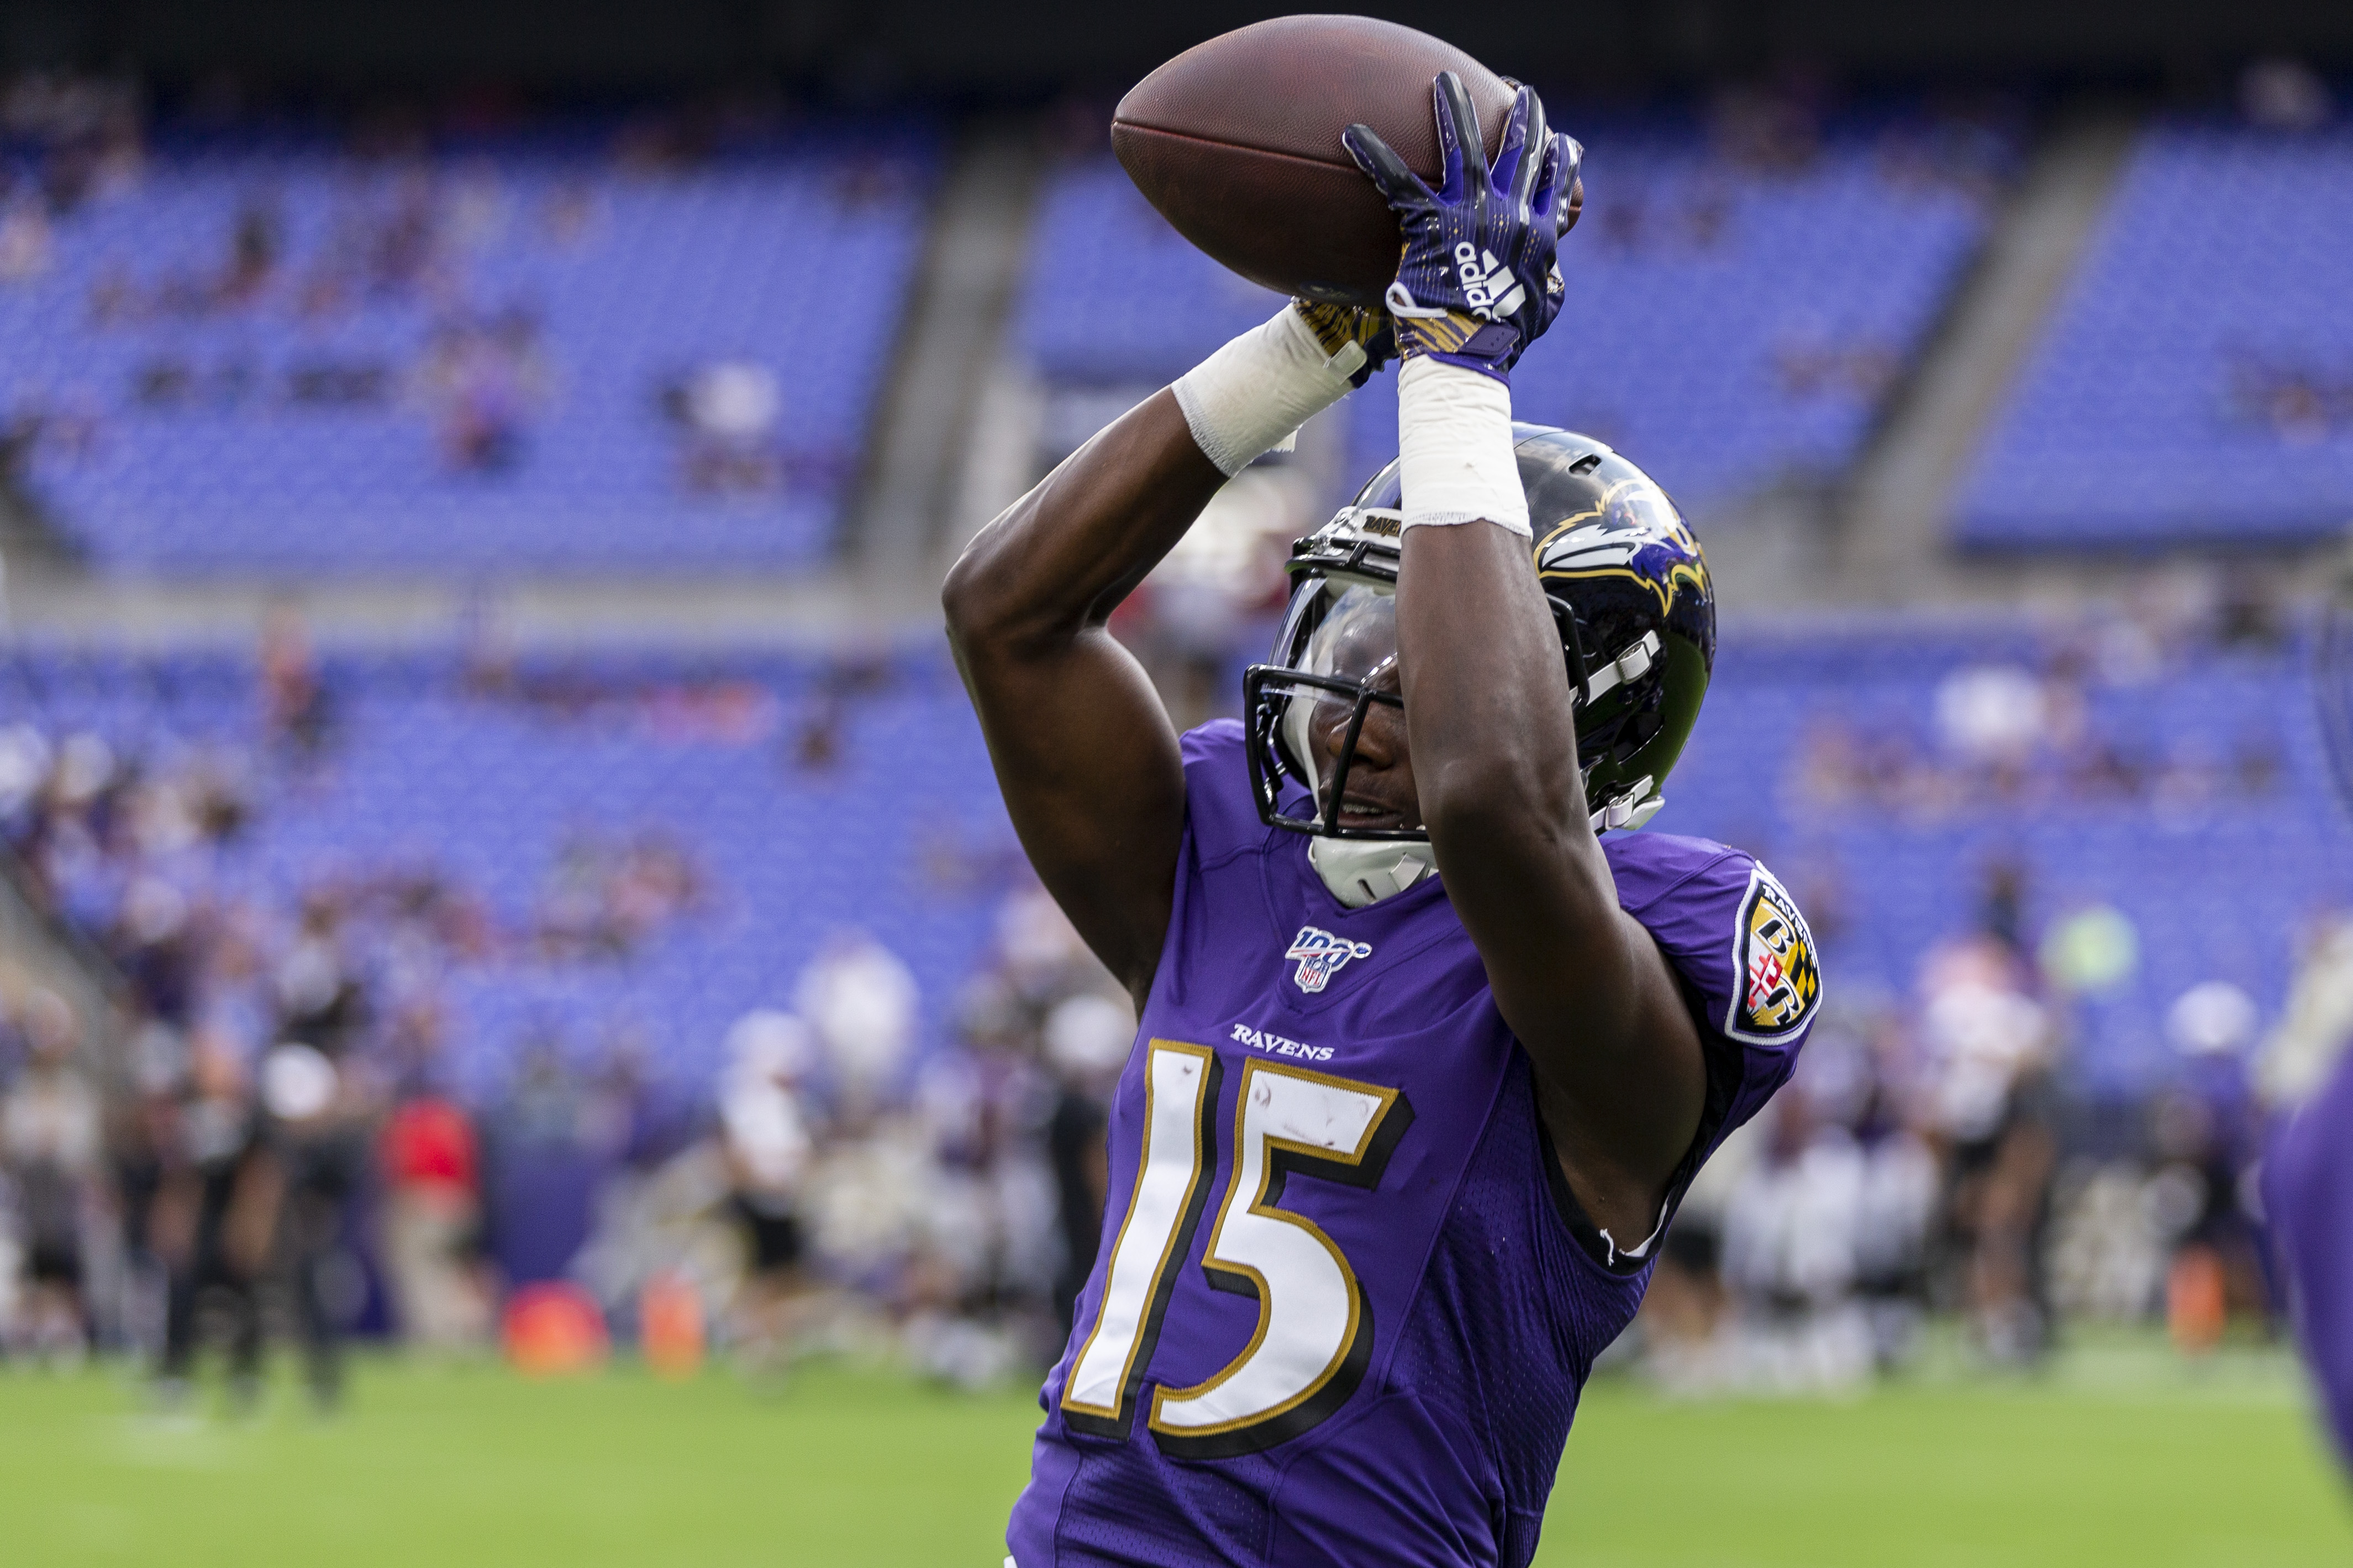 Baltimore Ravens vs. Seattle Seahawks injury report: Ravens list 1 as doubtful, 5 as questionable